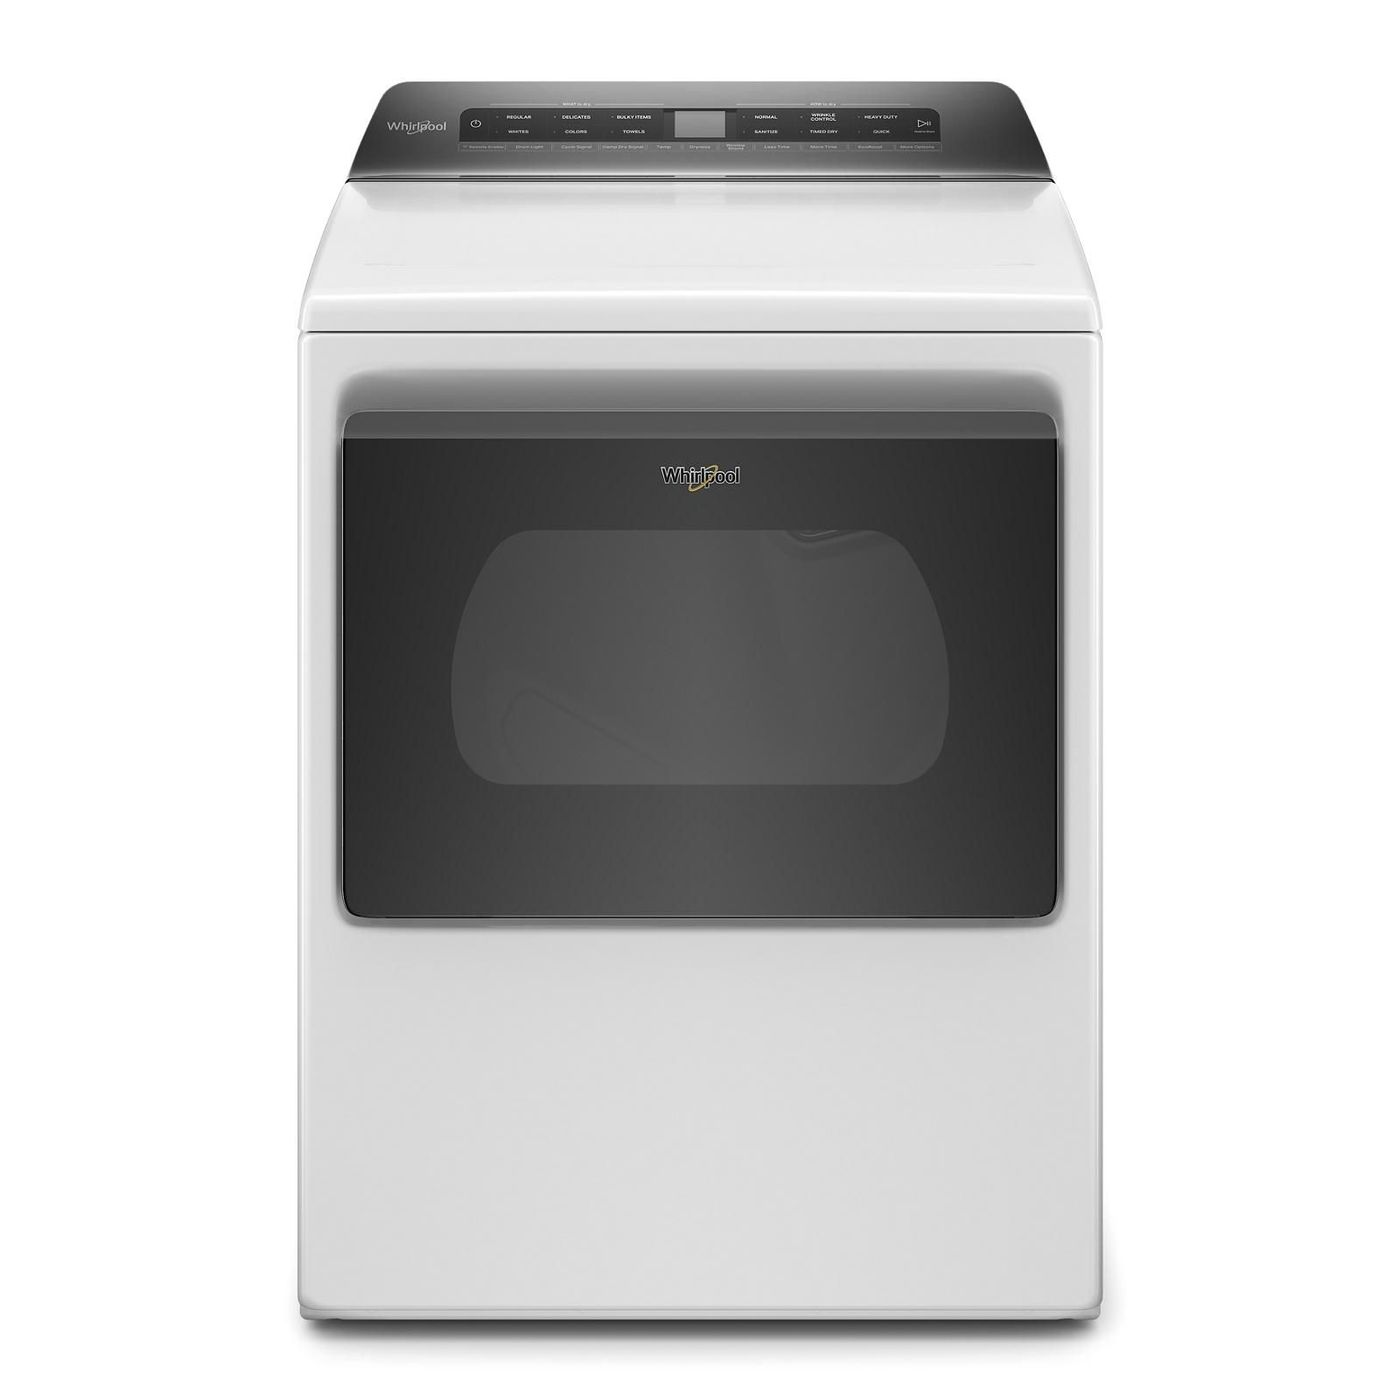 Whirlpool Dryer YWED6120HW